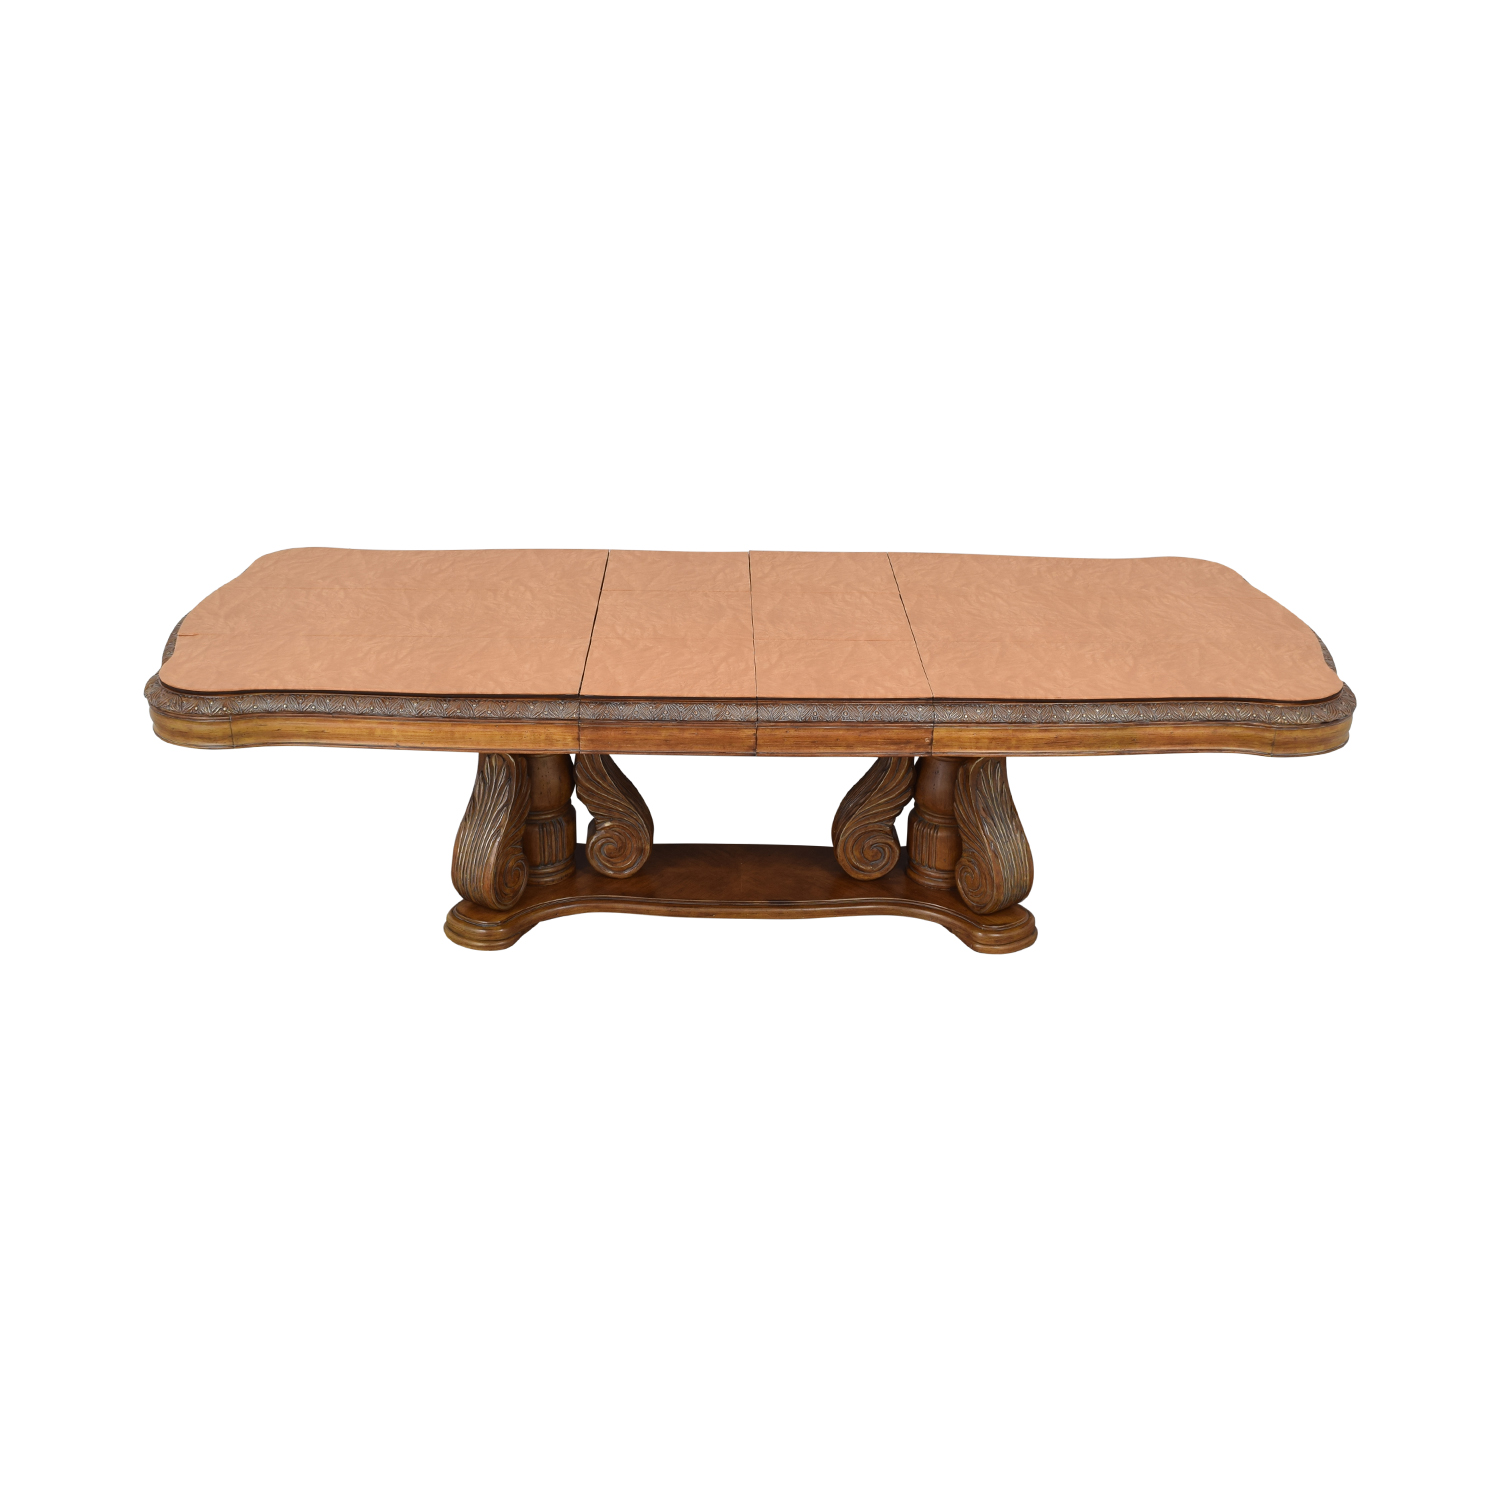 Michael Amini Michael Amini Extendable Dining Table with Two Leaves brown